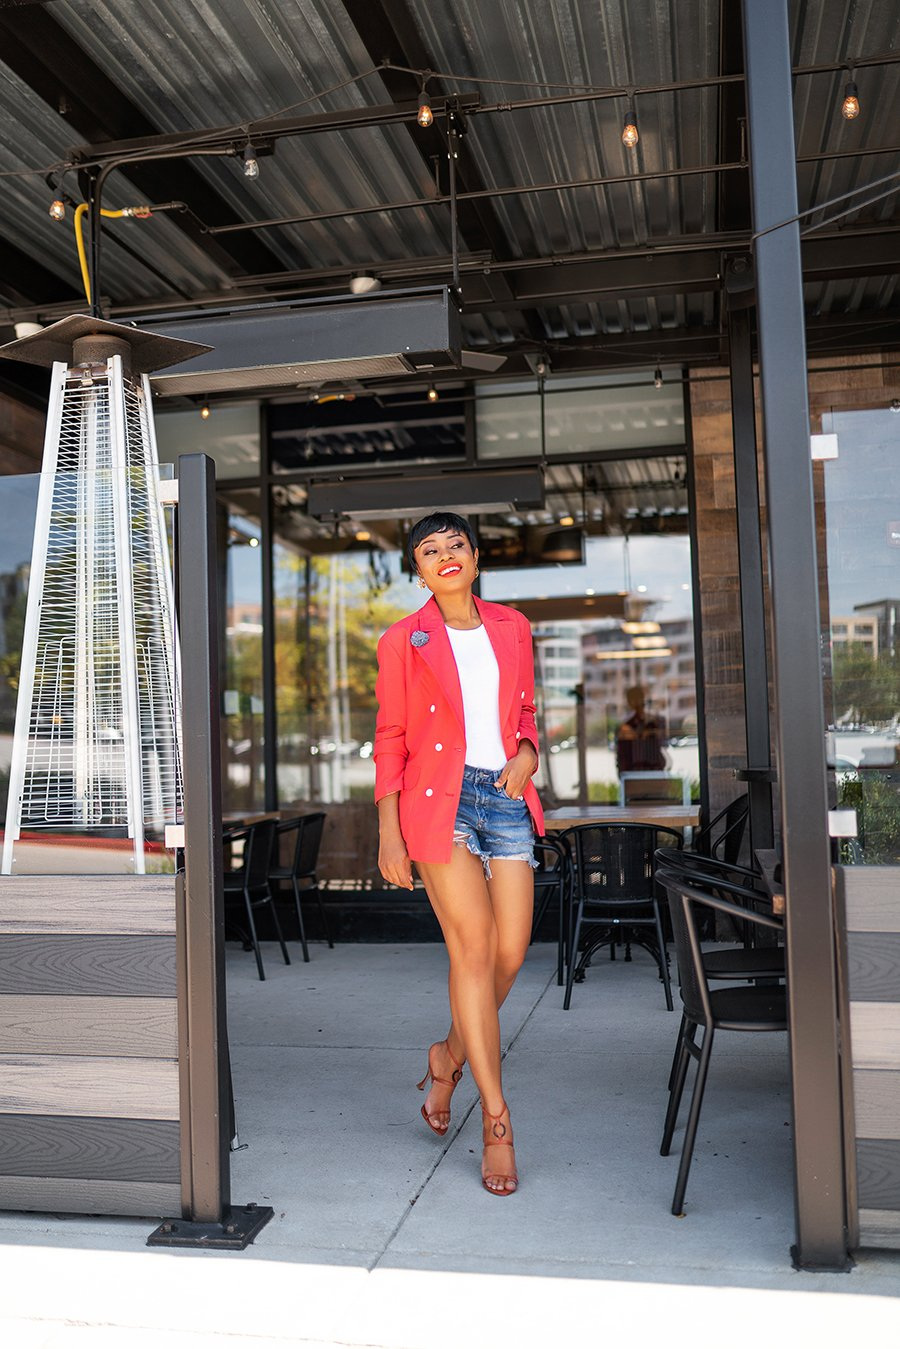 stella-adewunmi-of-jadore-fashion-blog-shares-what-to-wear-to-brunch-in-summer